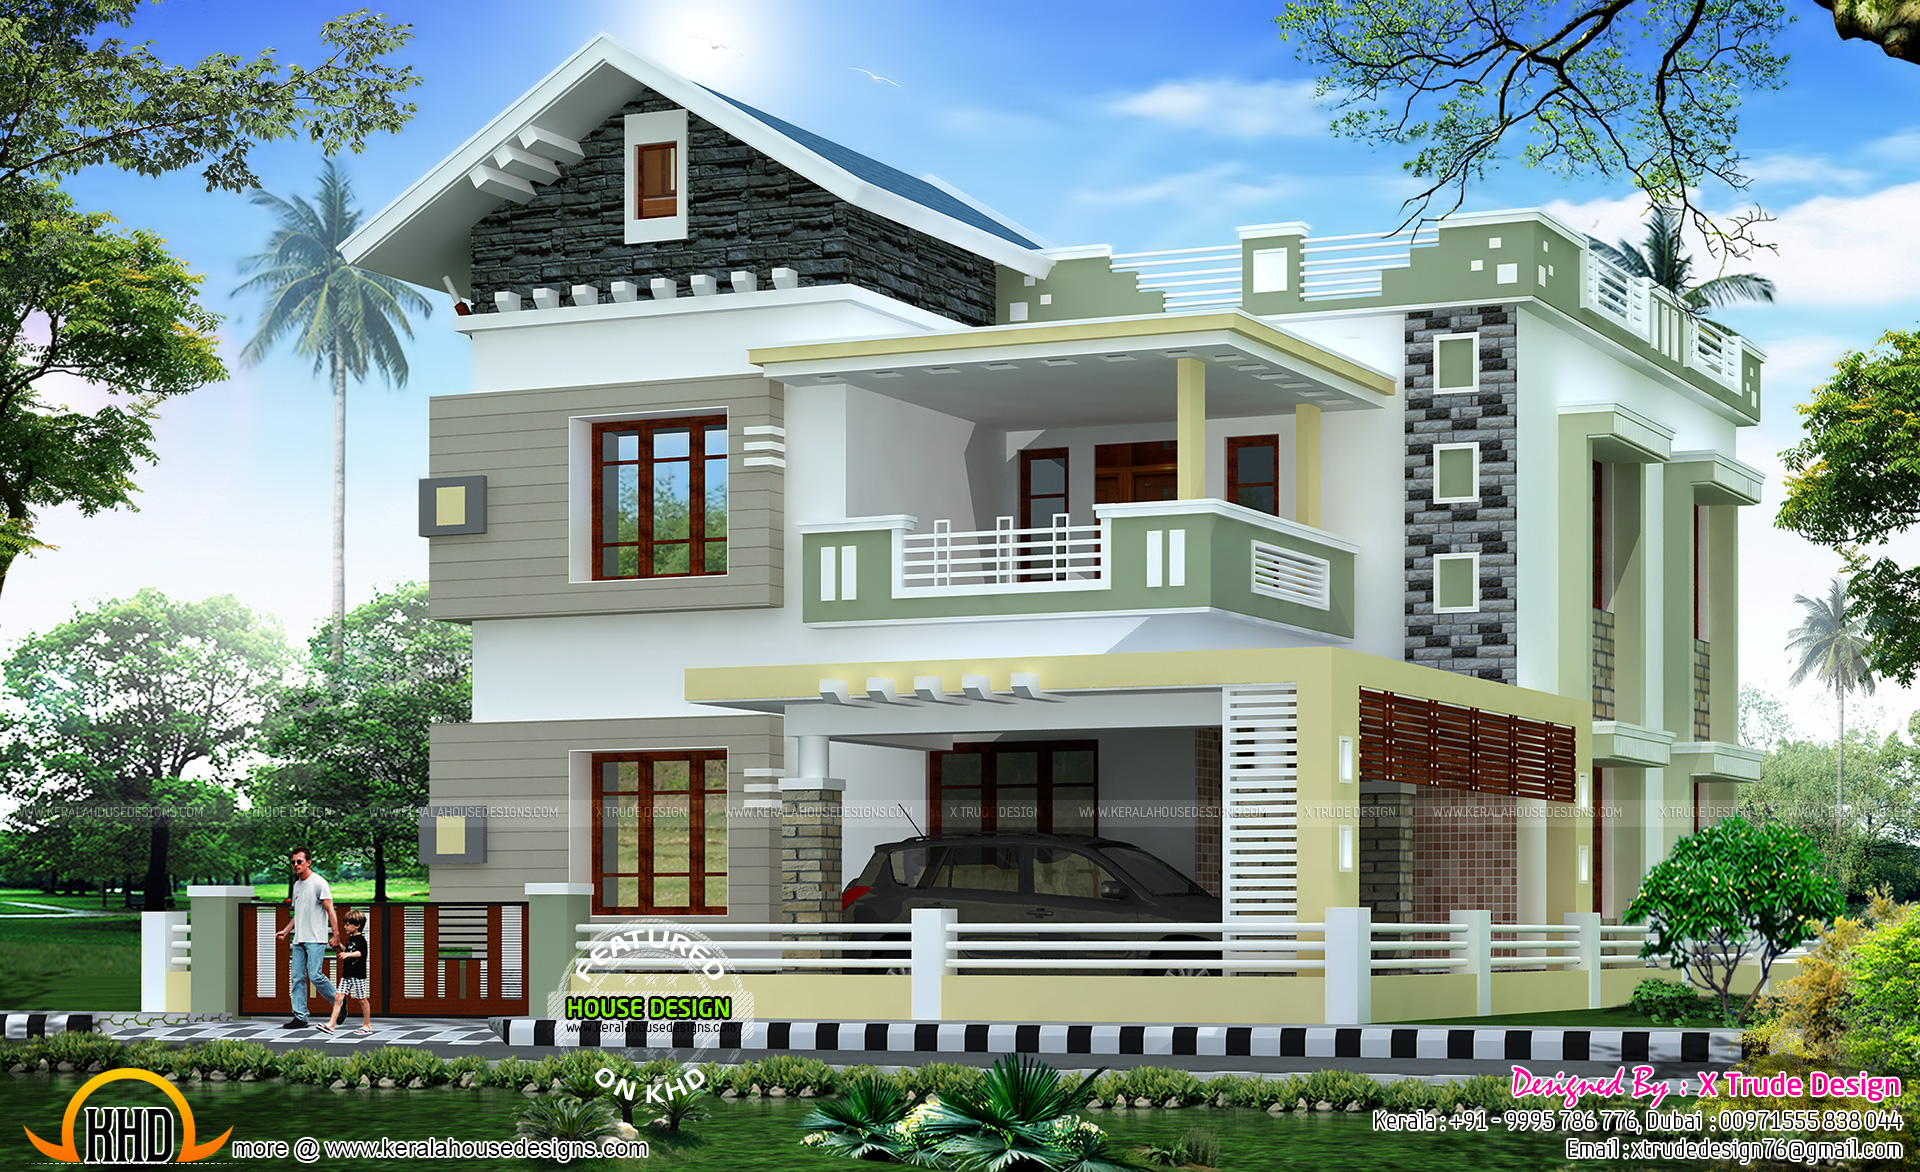 2581 Sq-ft House X Trude Design - Kerala Home